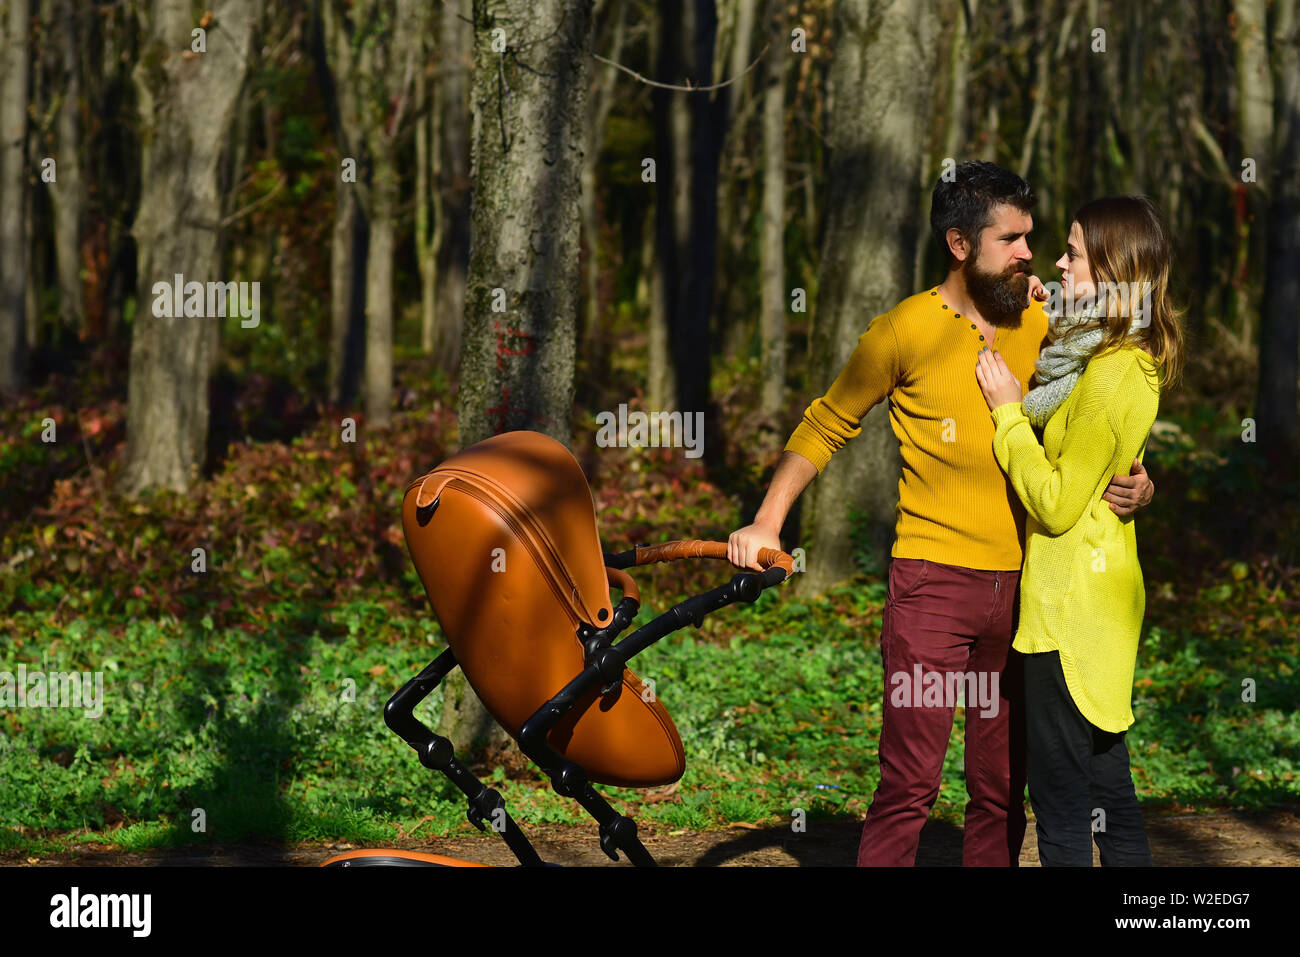 Family values concept. Loving husband kiss wife with baby pram in spring park, family values. A celebration of love and friendship. - Stock Image